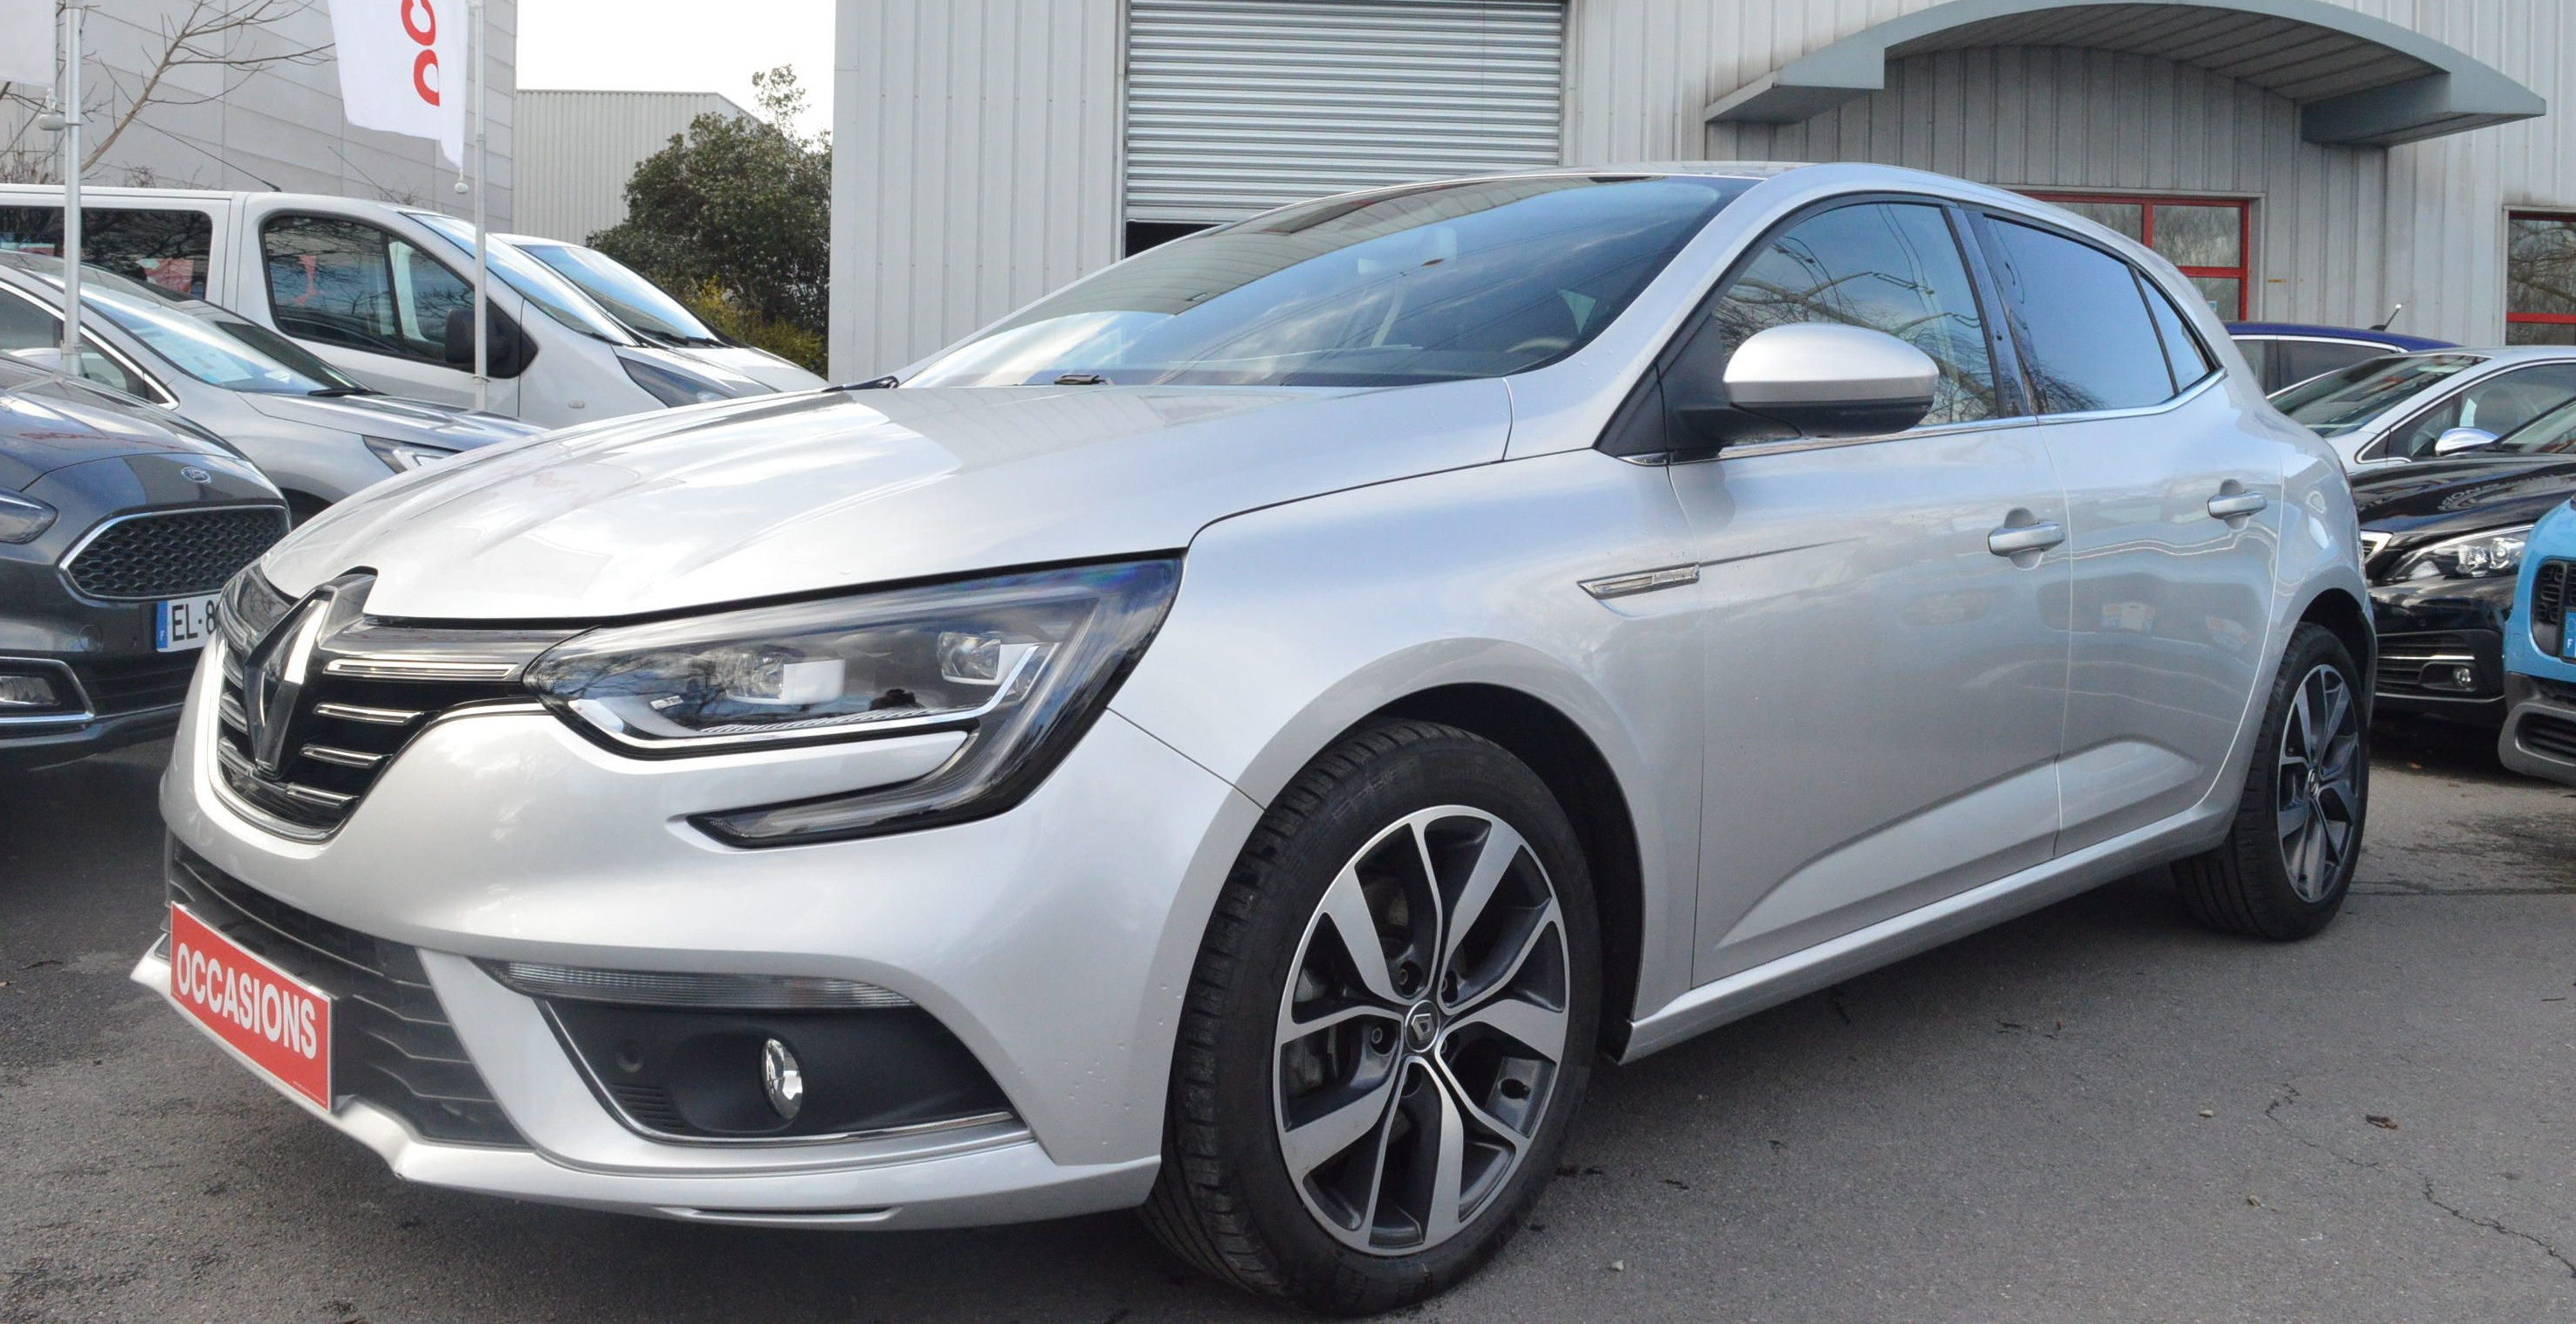 RENAULT MEGANE IV BERLINE 2016 à 15600 € - Photo n°1